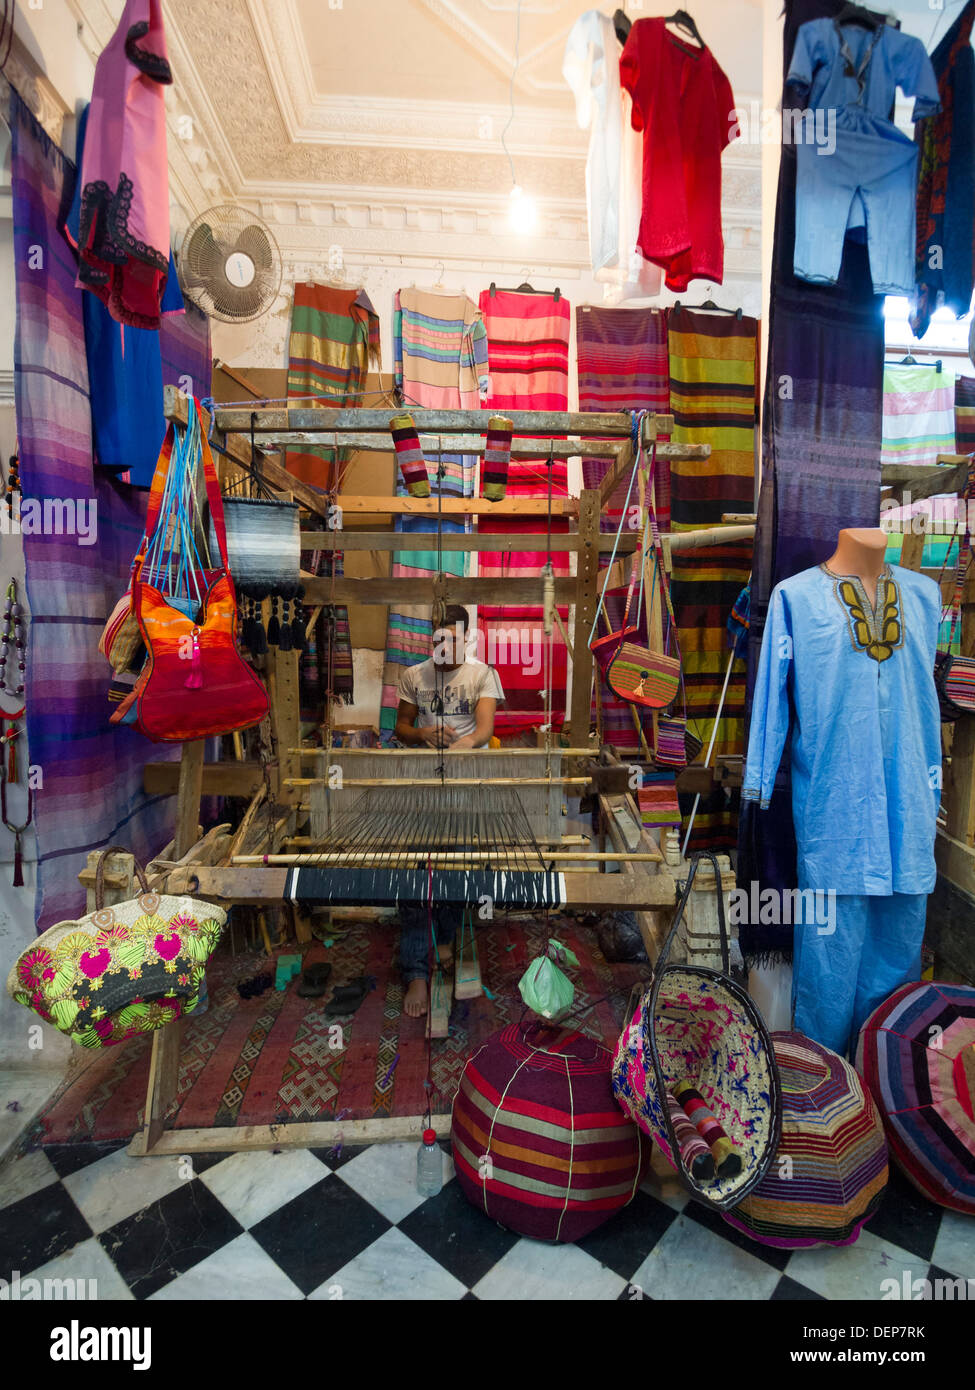 Loom clothing store